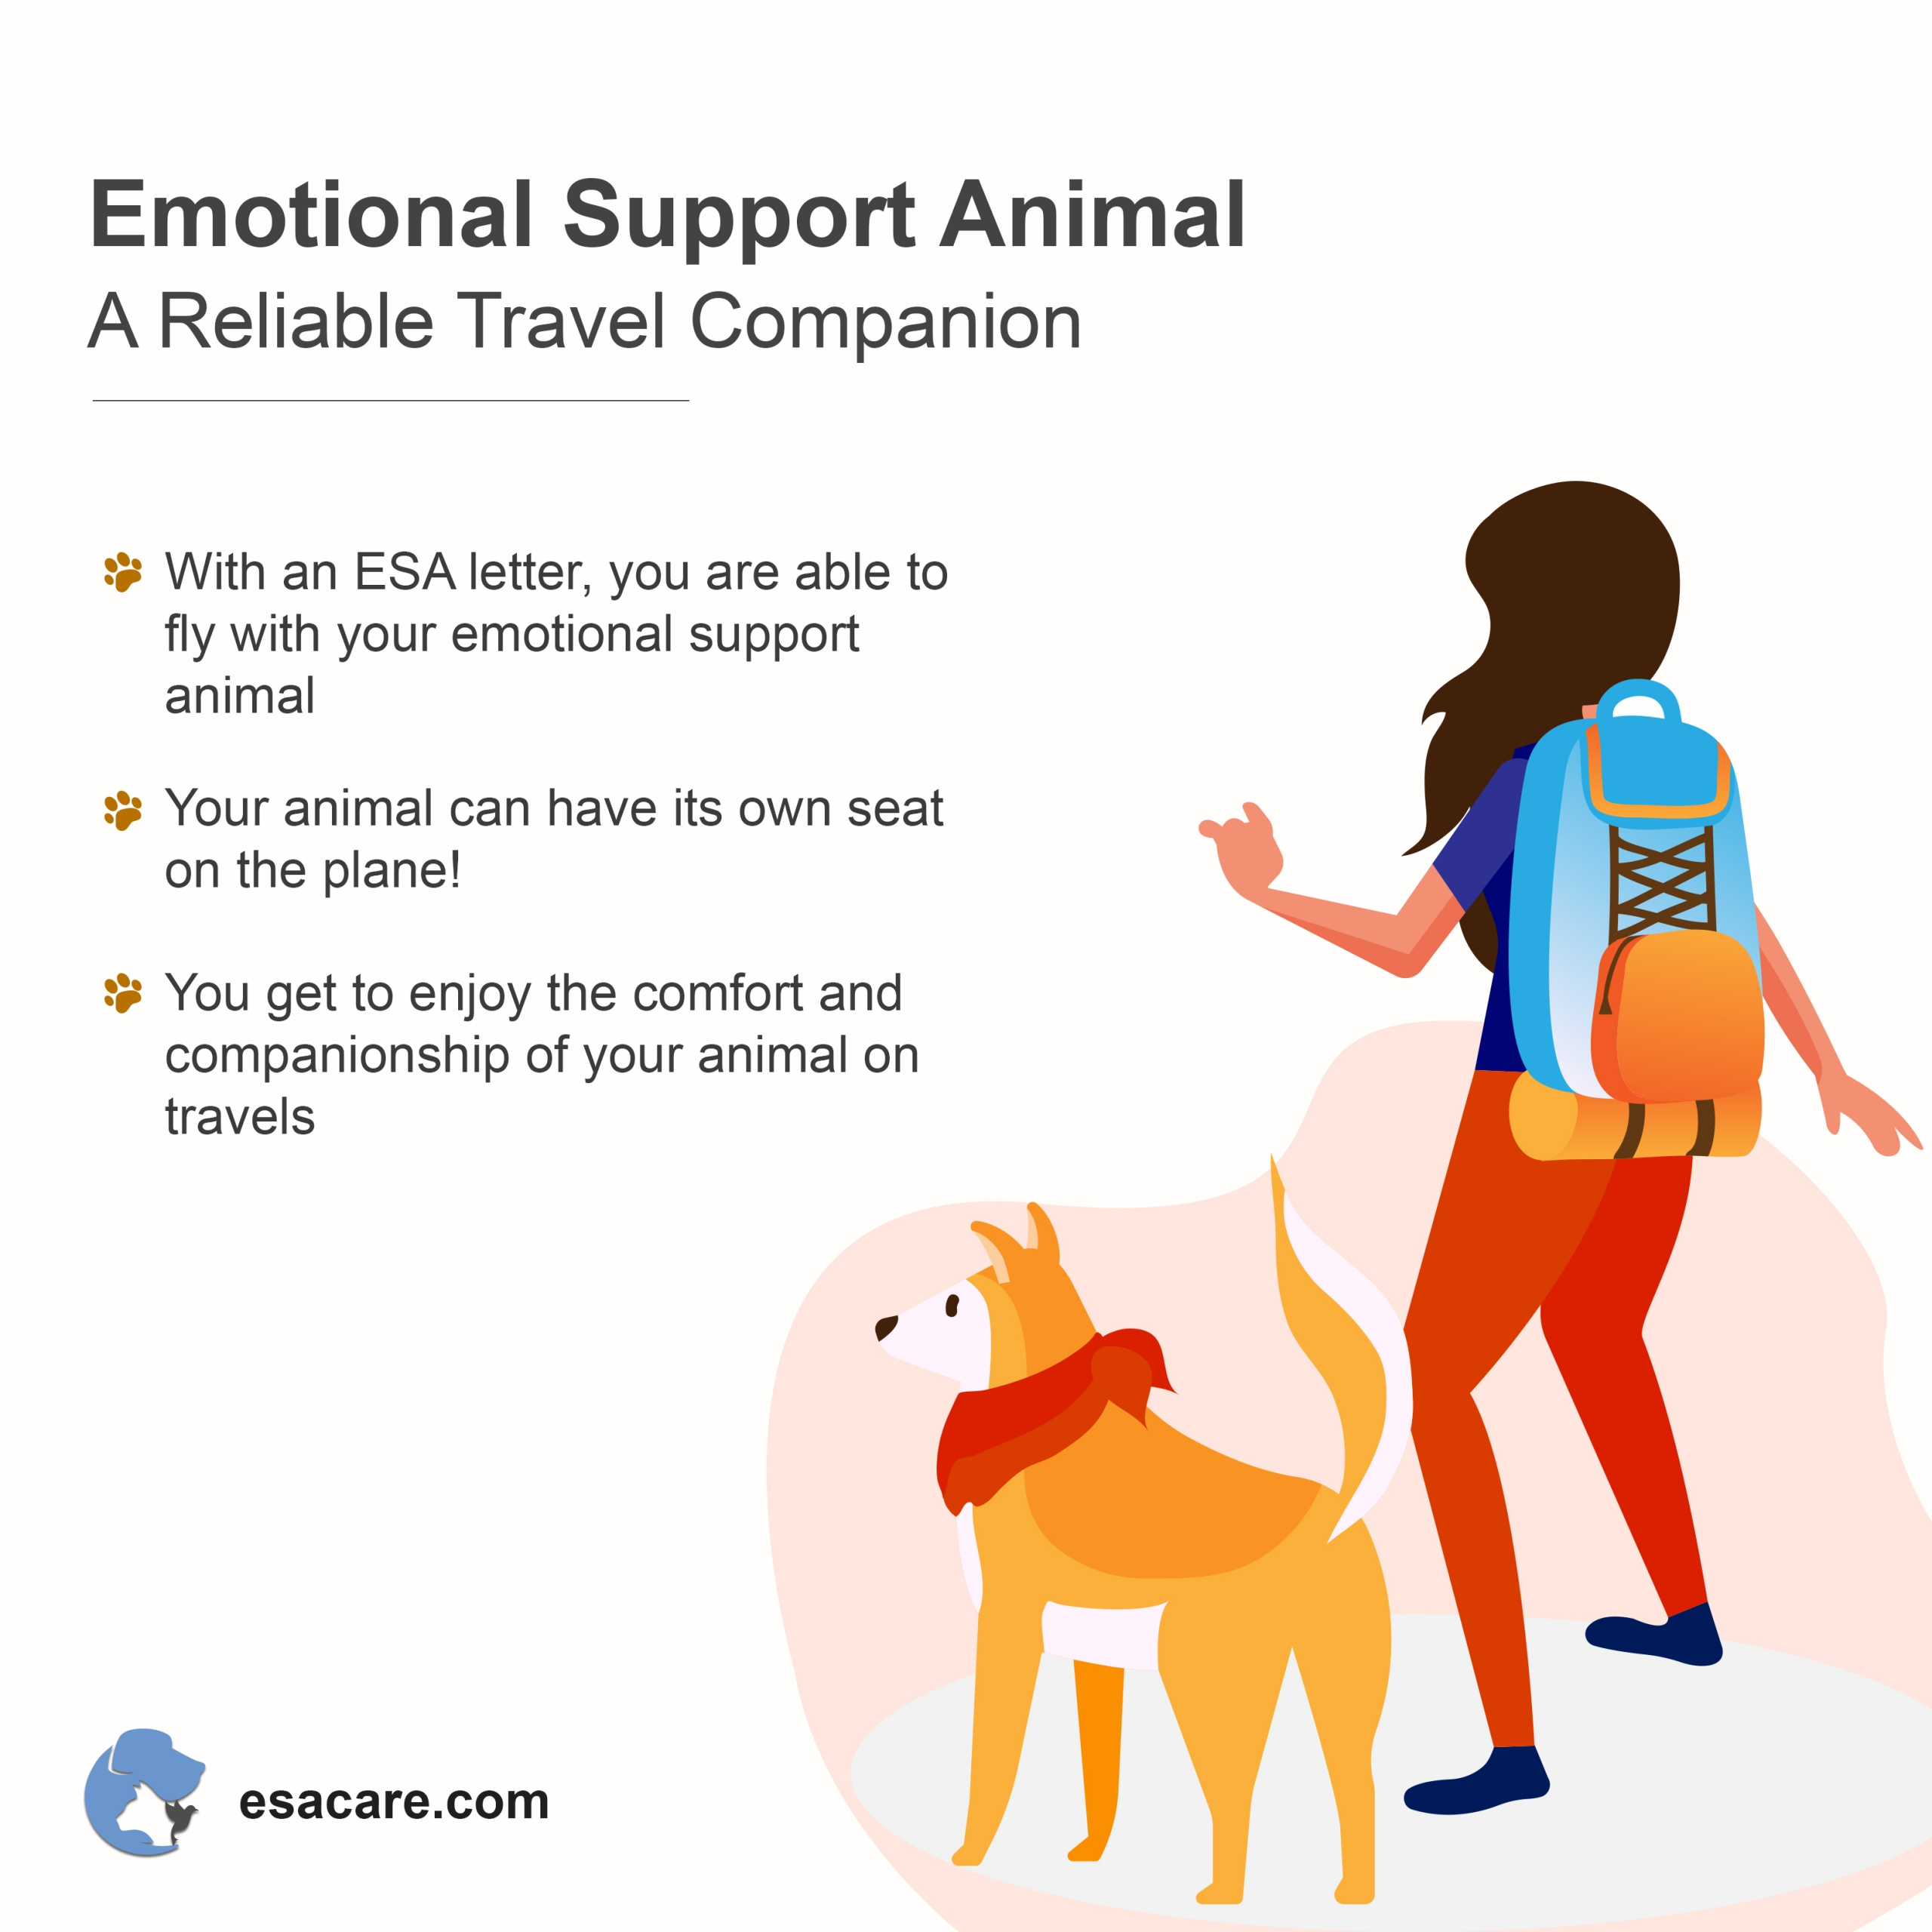 travel with an emotional support animal